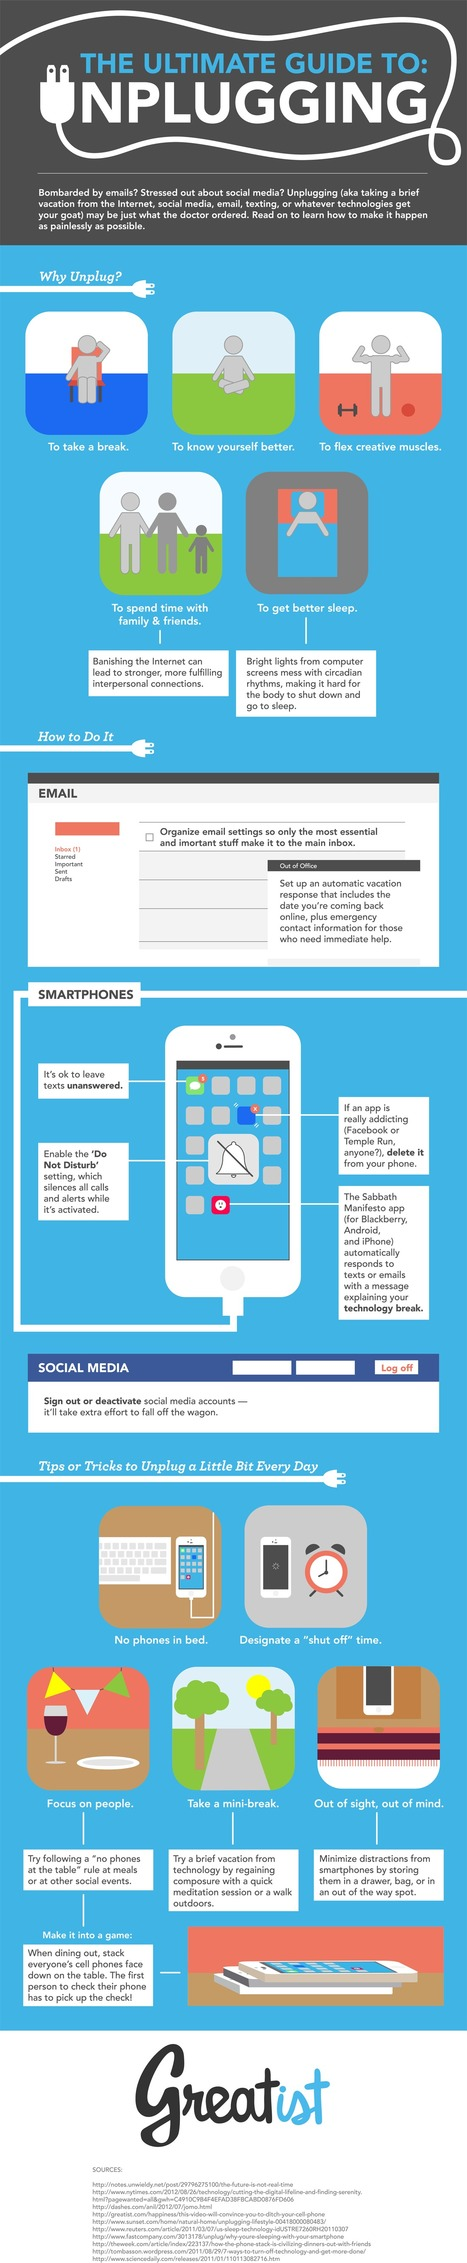 Infographic: How to unplug (temporarily) from the digital world | Personal Development | Scoop.it